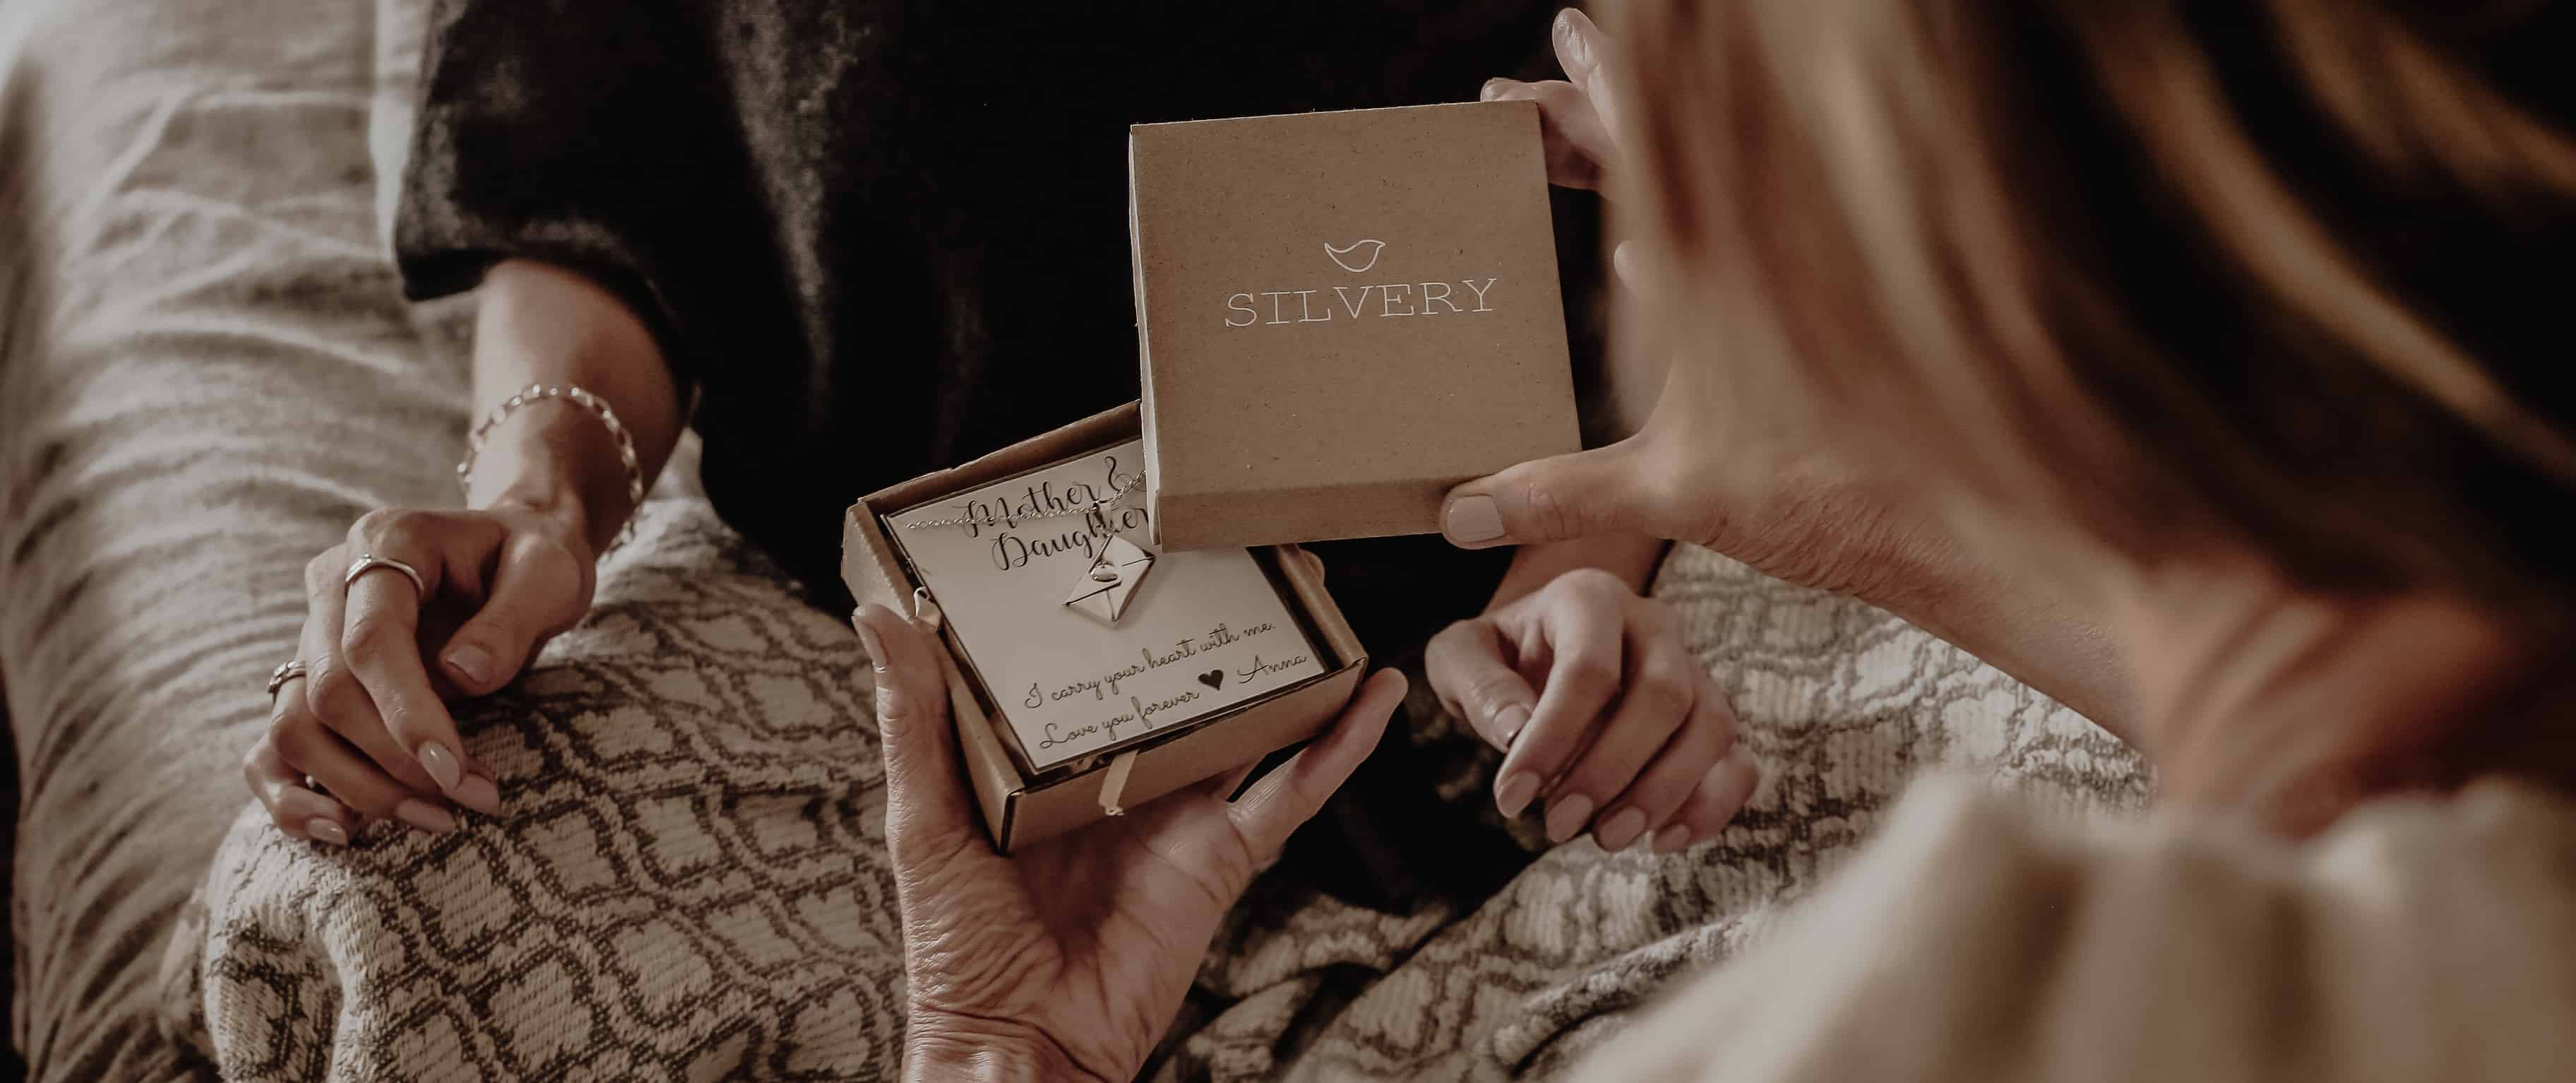 Personalised gifts in south africa from silvery jewellery